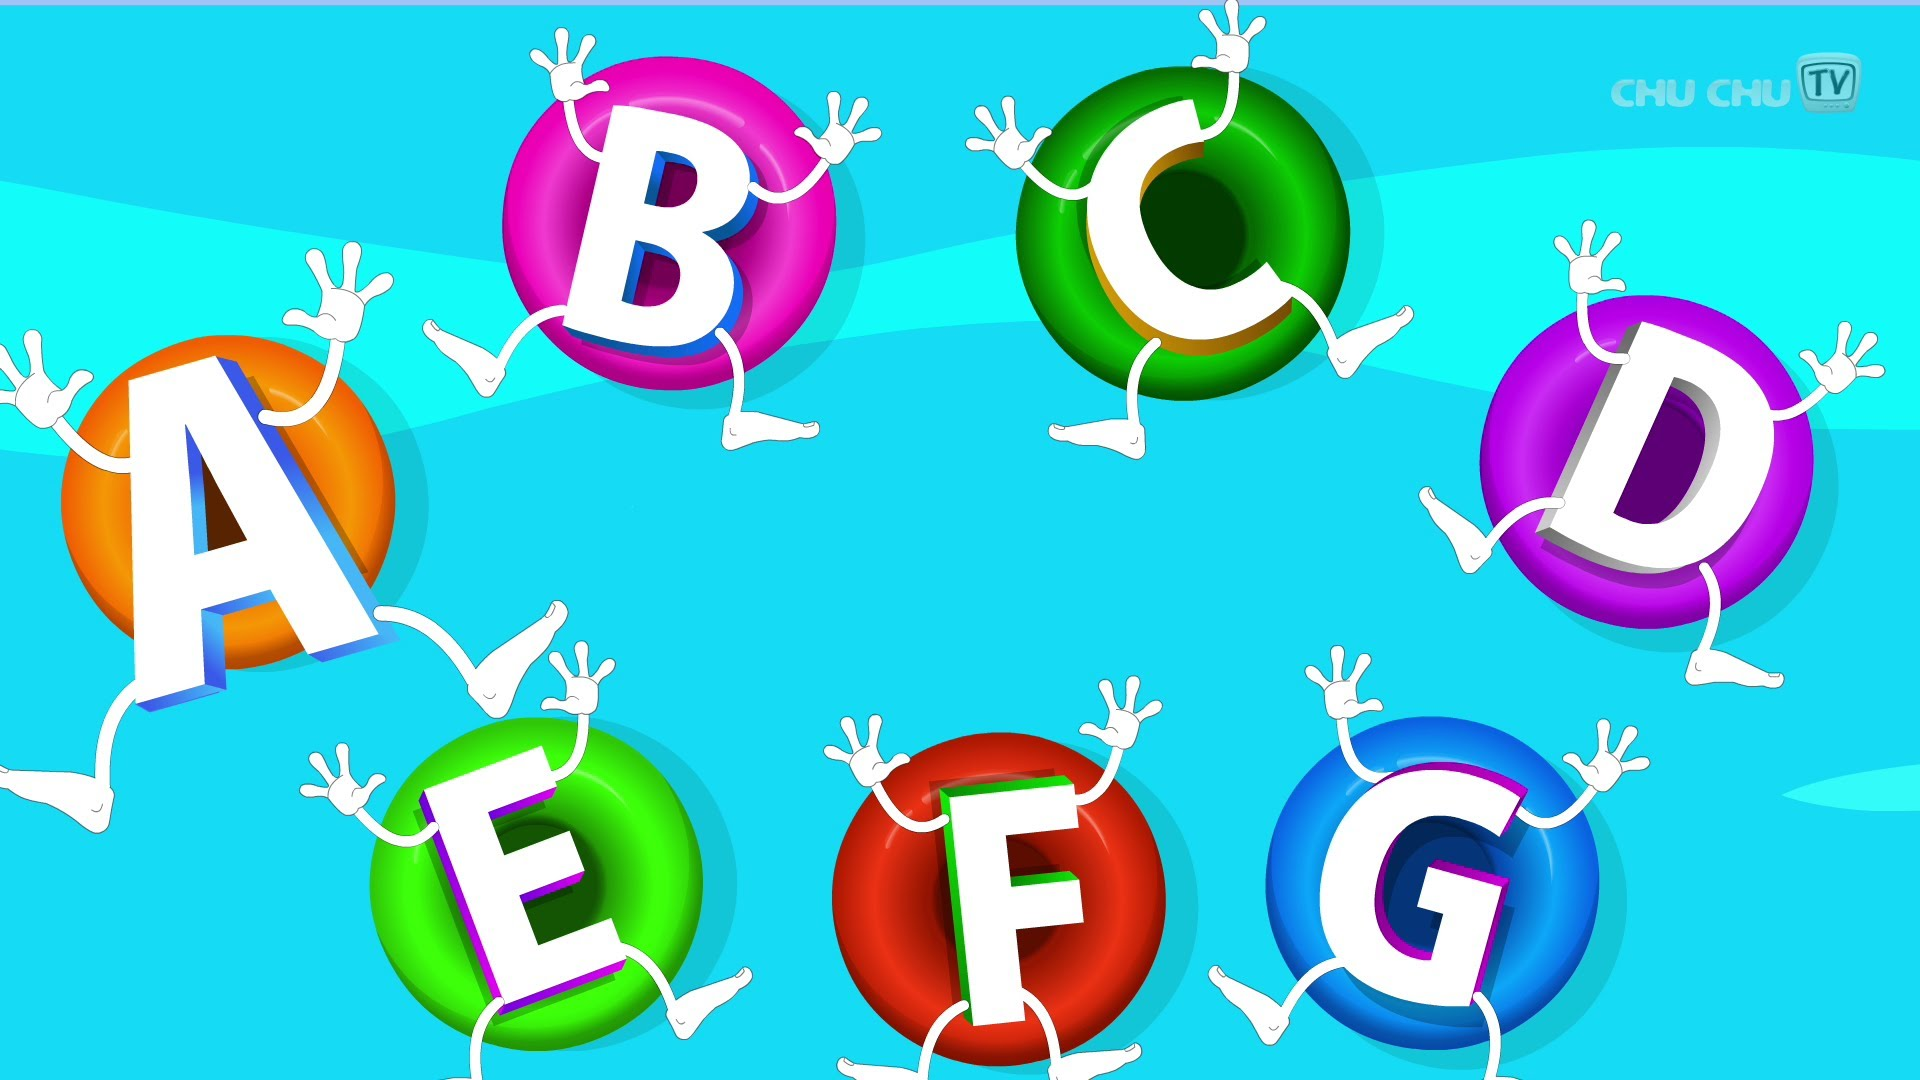 Download Abcd Words Wallpaper Gallery